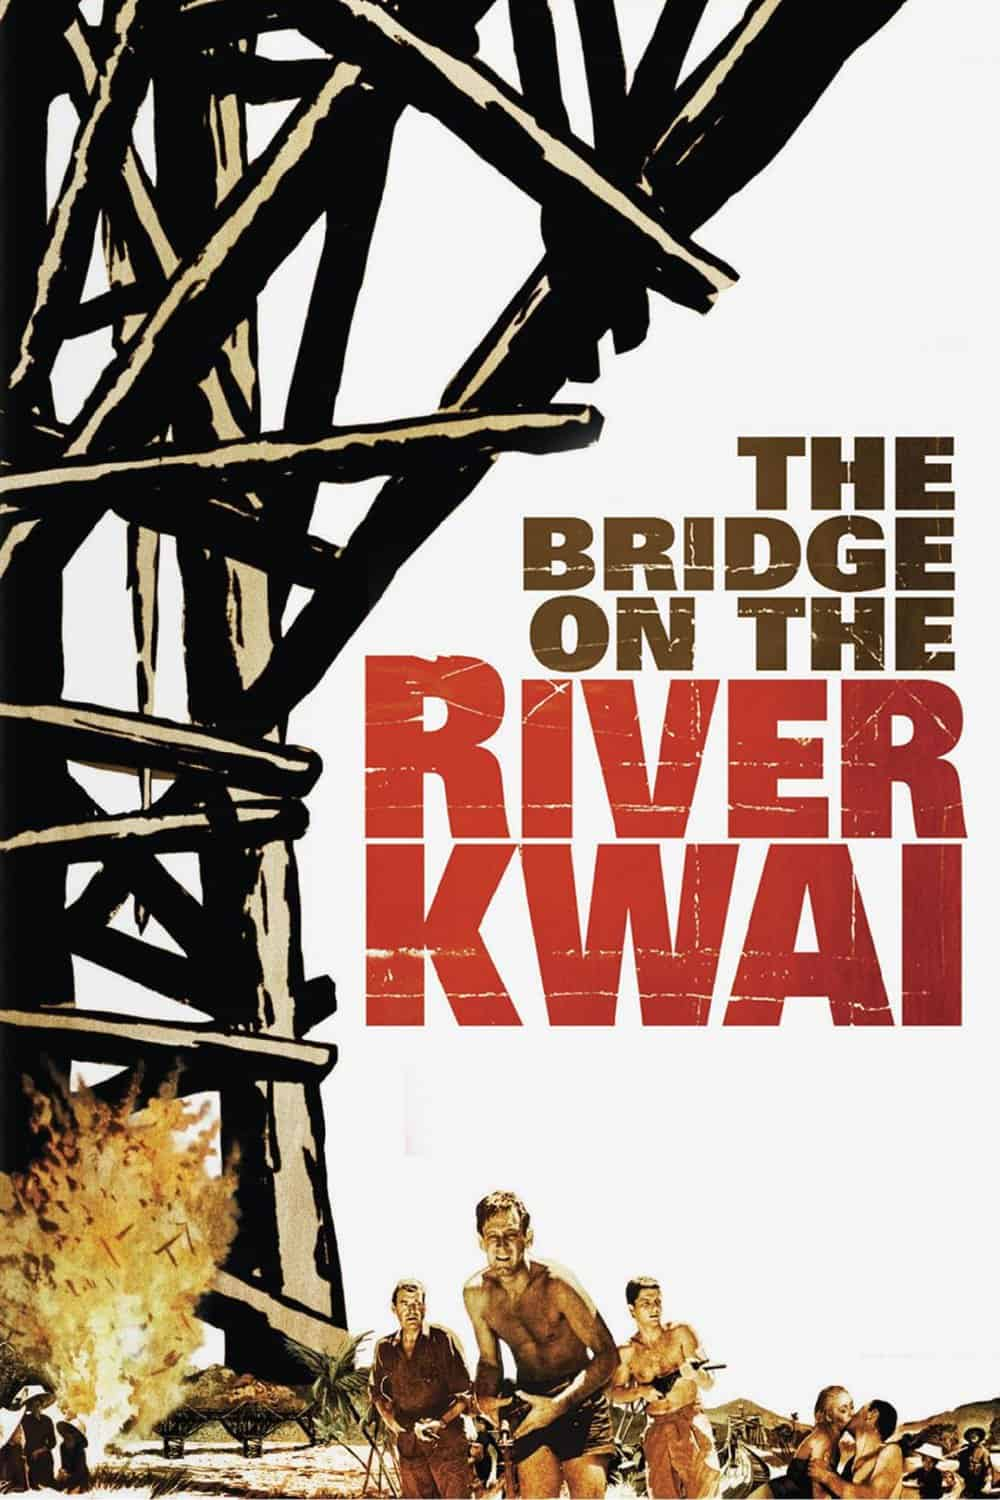 The Bridge on the River Kwai, 1957